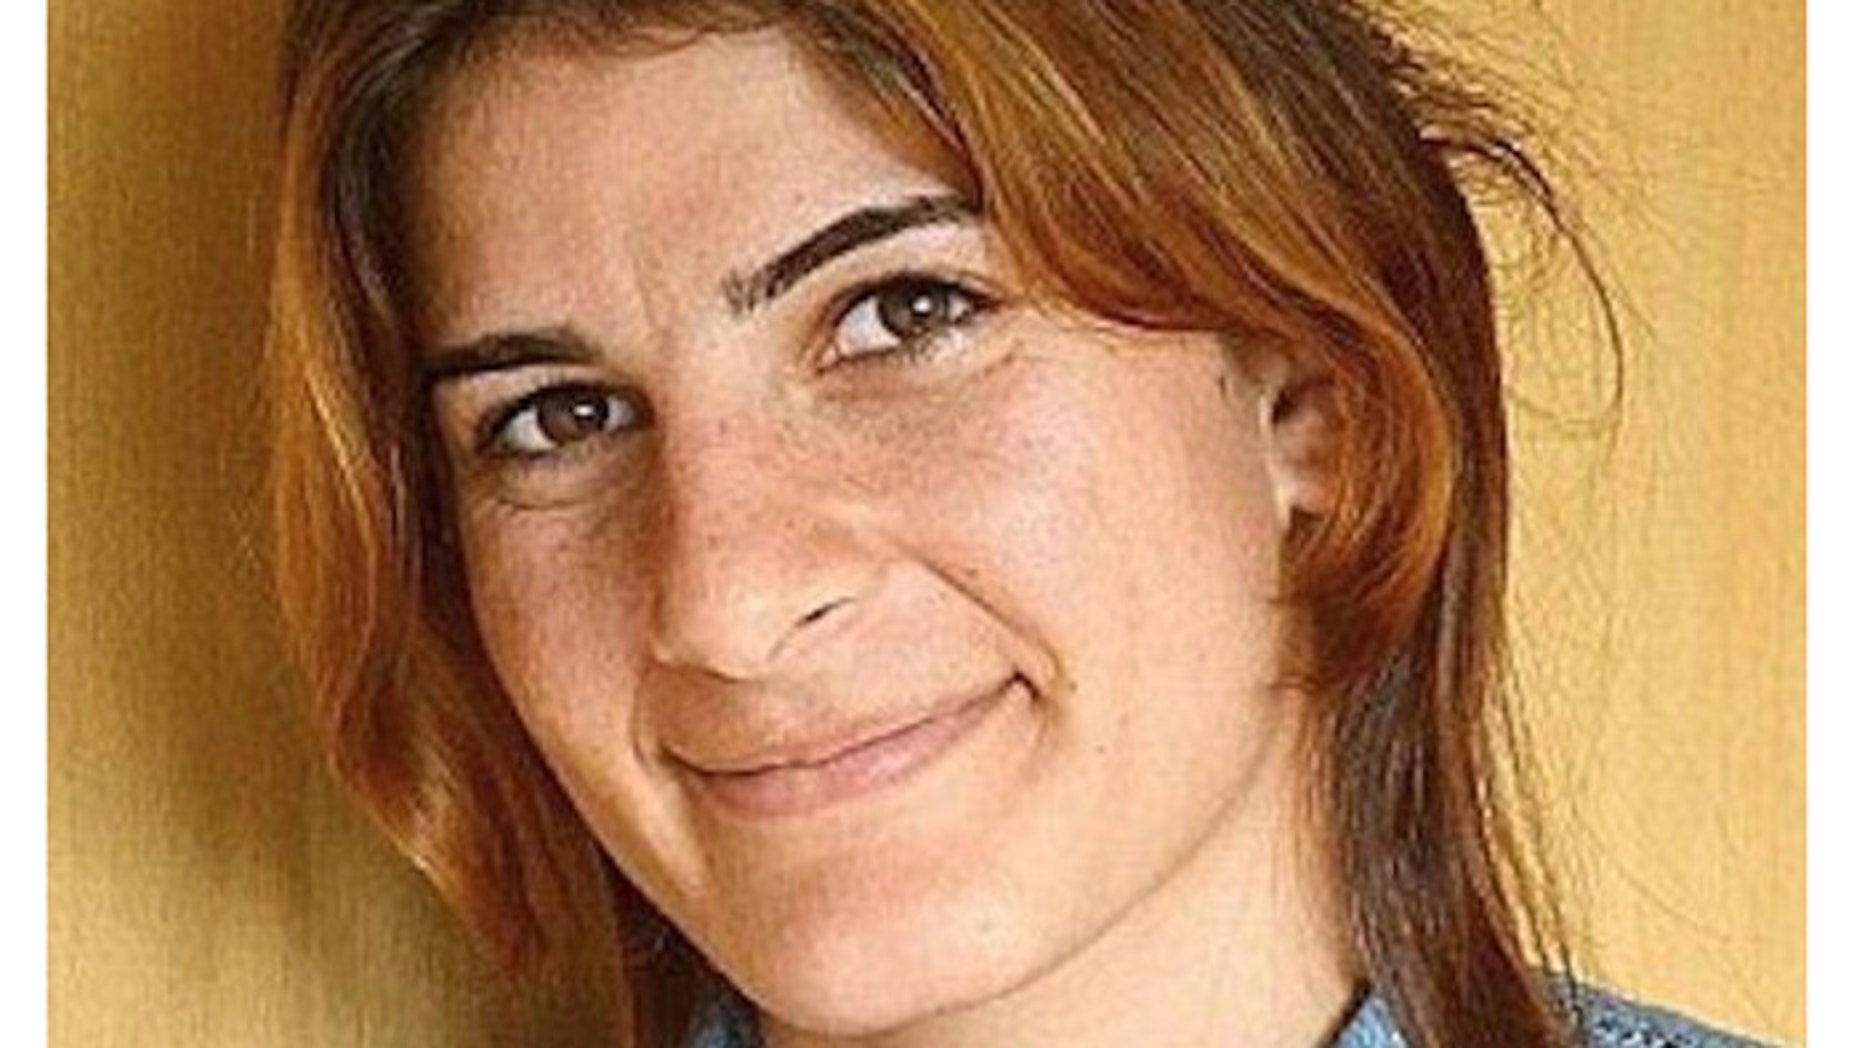 """The sad story of the woman known in Germany as """"Rokstan M."""" has stoked revulsion at the radical Islamist custom of """"honor killing."""""""